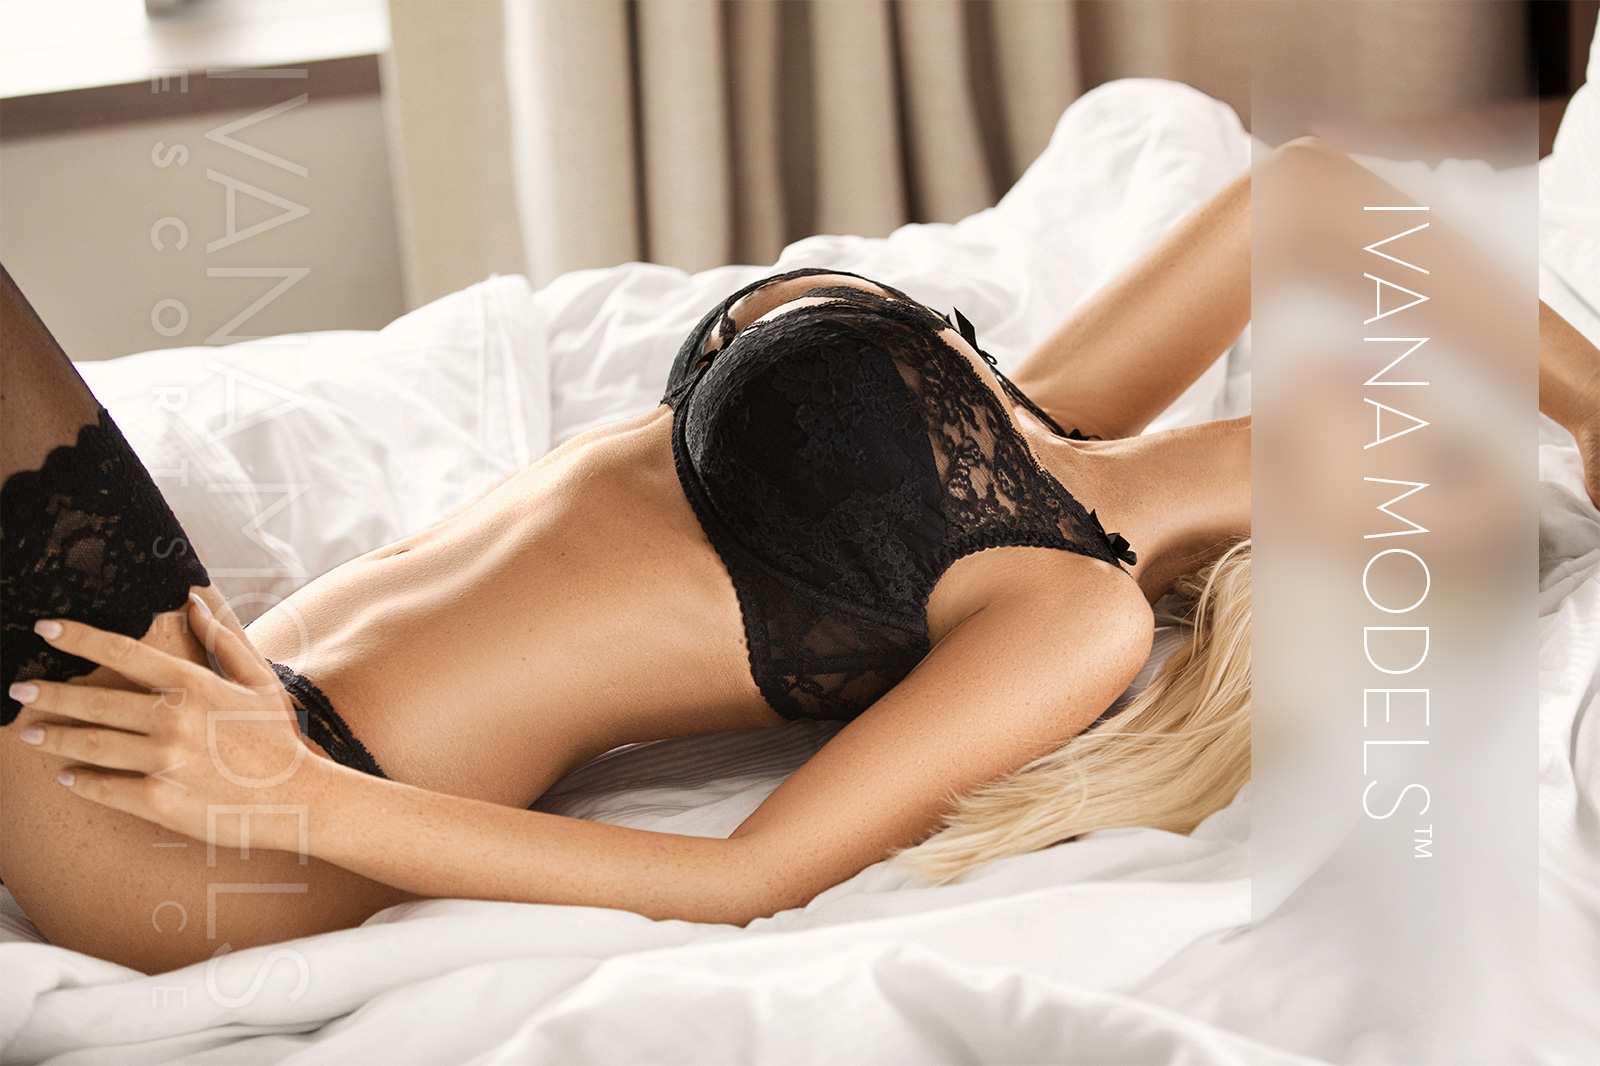 Premium escort service in Dusseldorf with Kylie